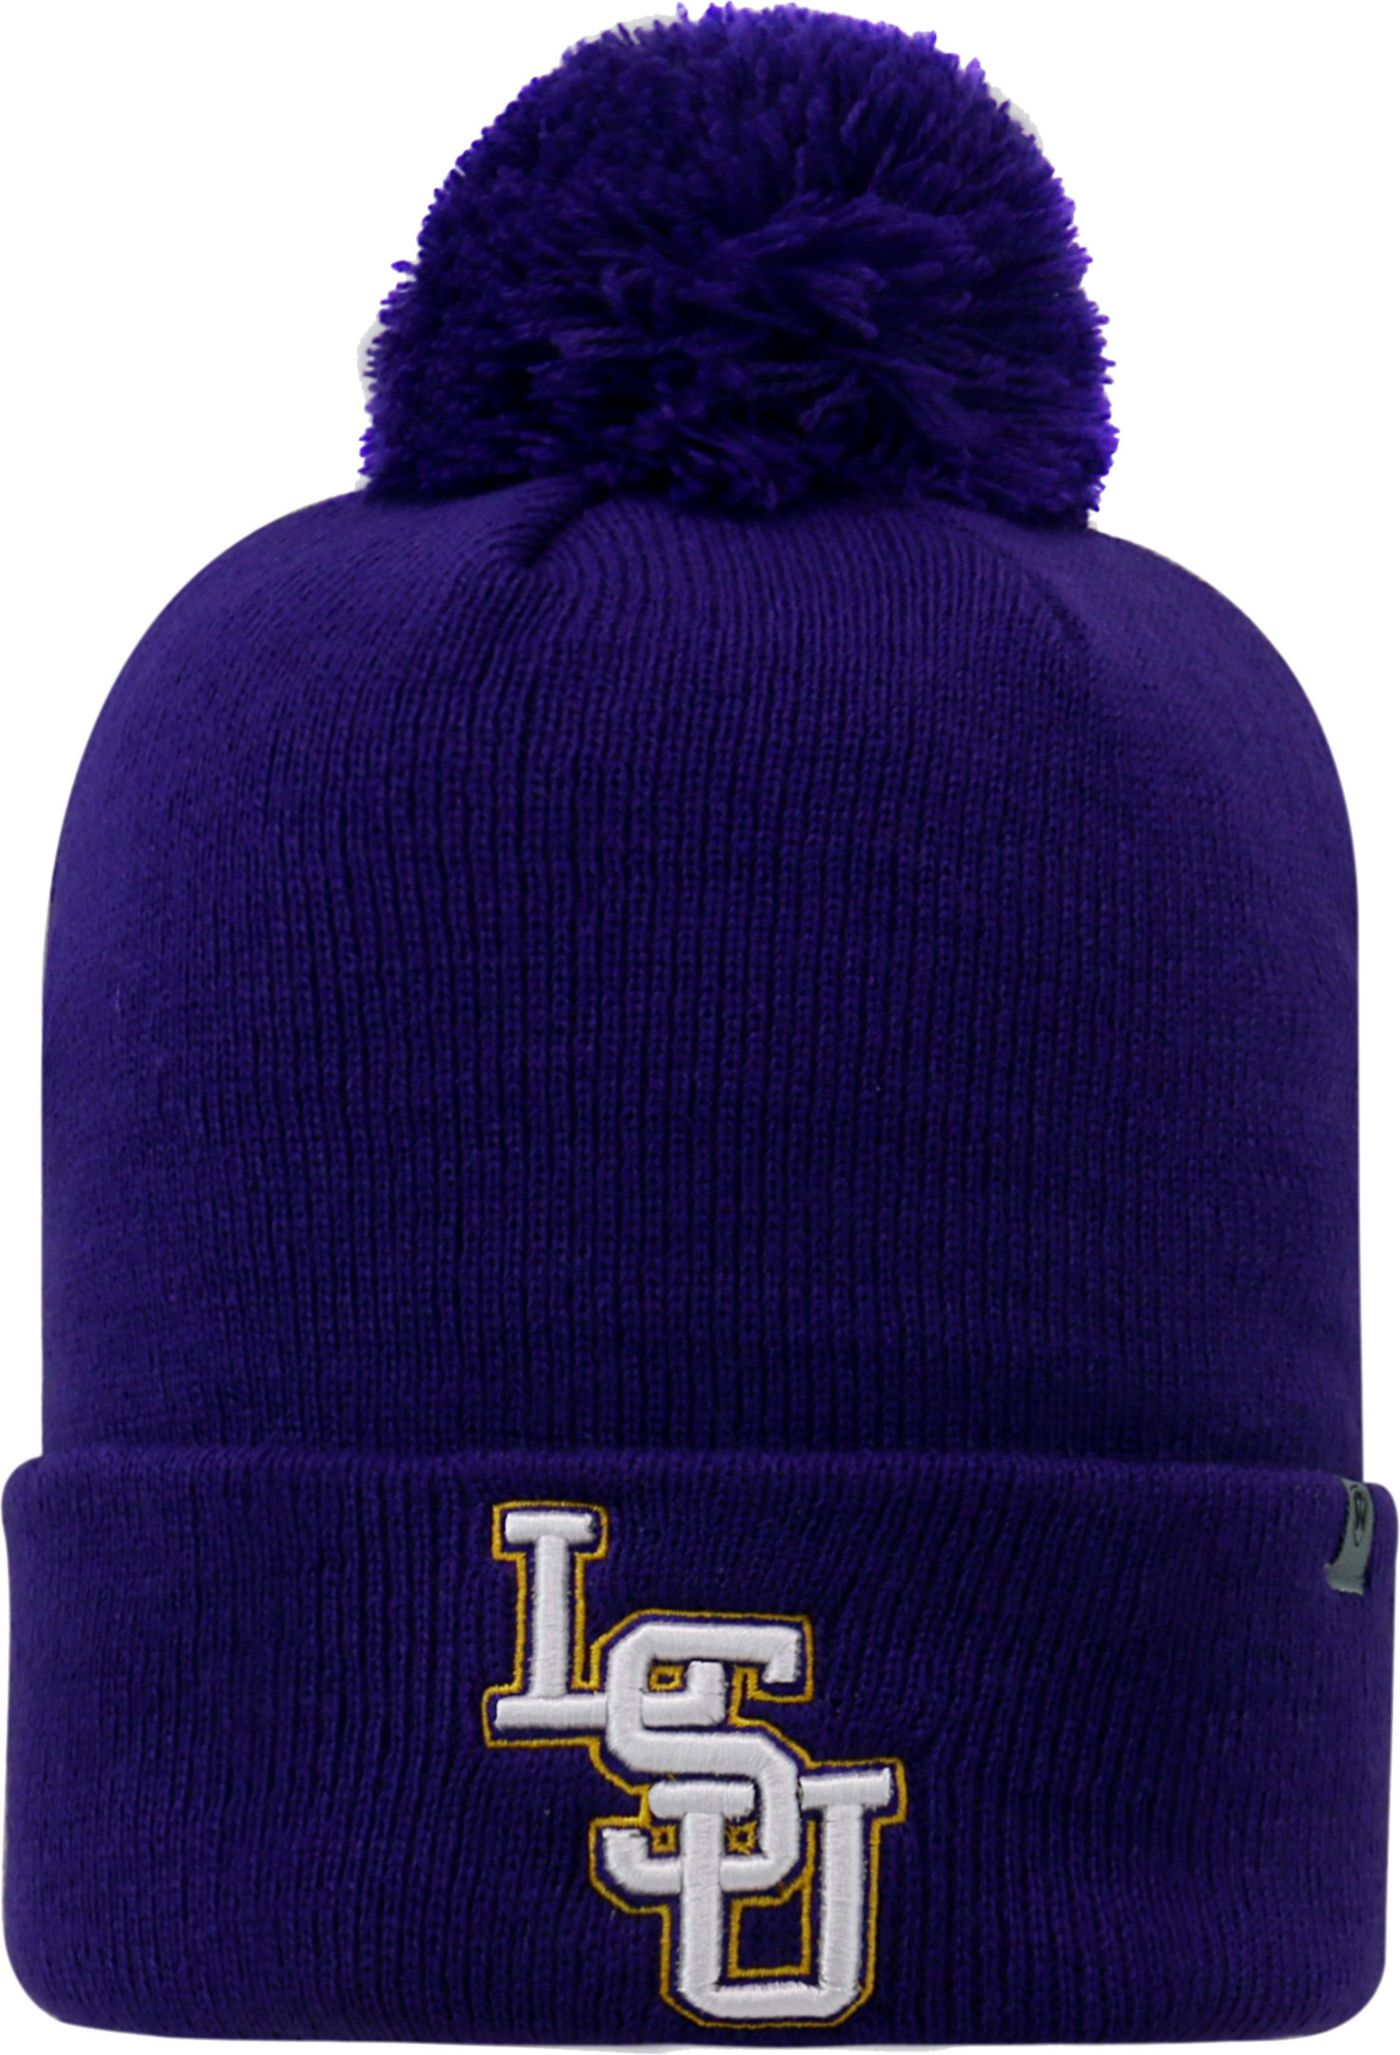 Top of the World Men's LSU Tigers Purple Pom Knit Beanie